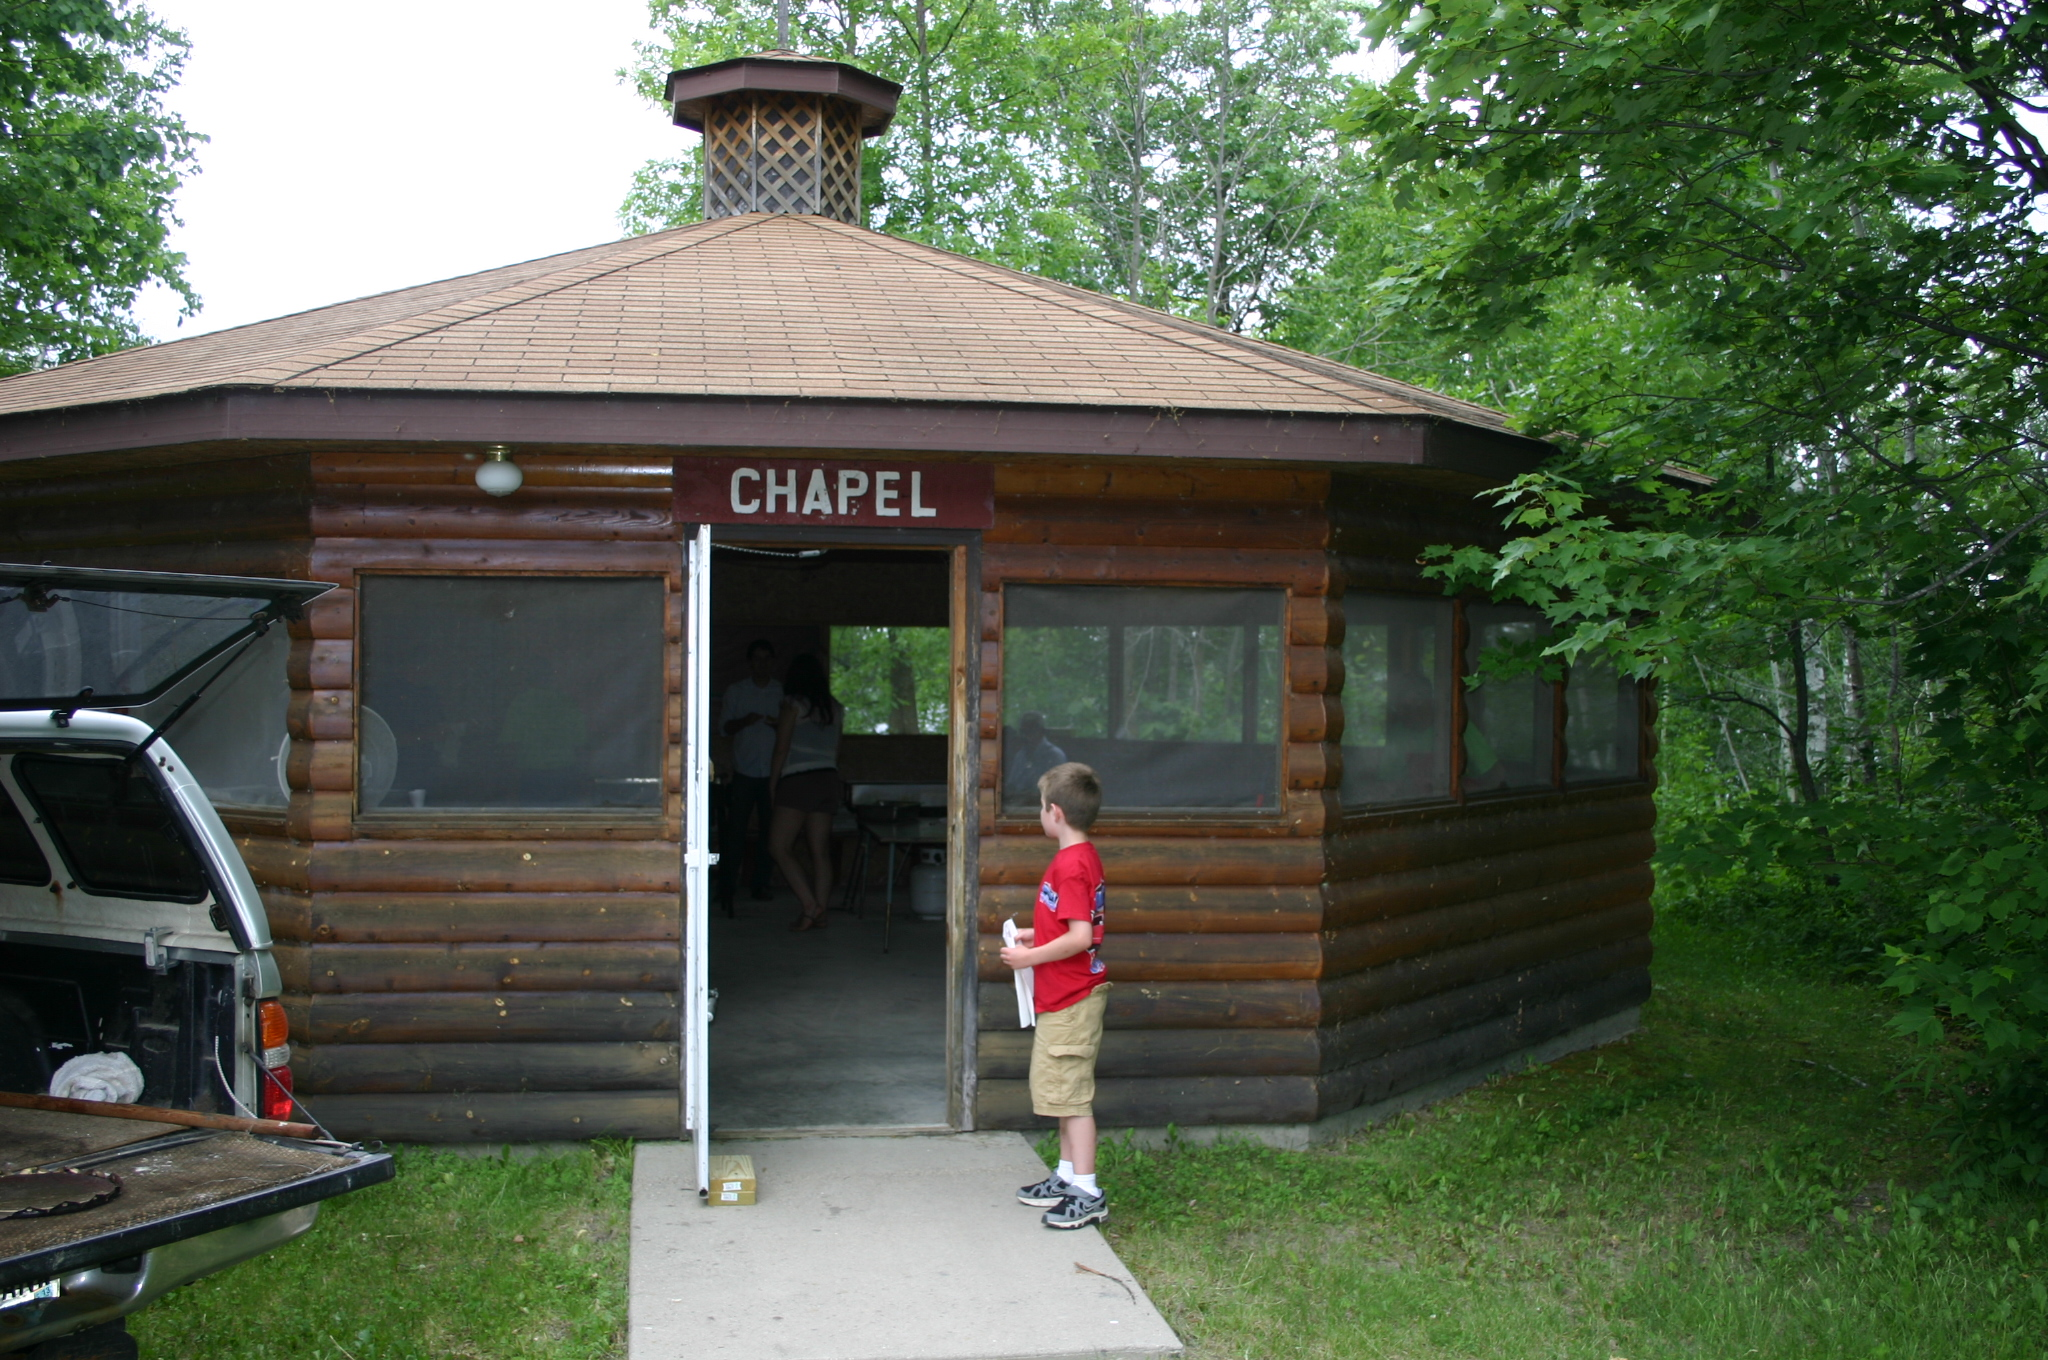 Chapel - The chapel is a screened gazebo with benches lining the inside perimeter. Extra chairs and tables can be brought in to facilitate the use for small group meetings.